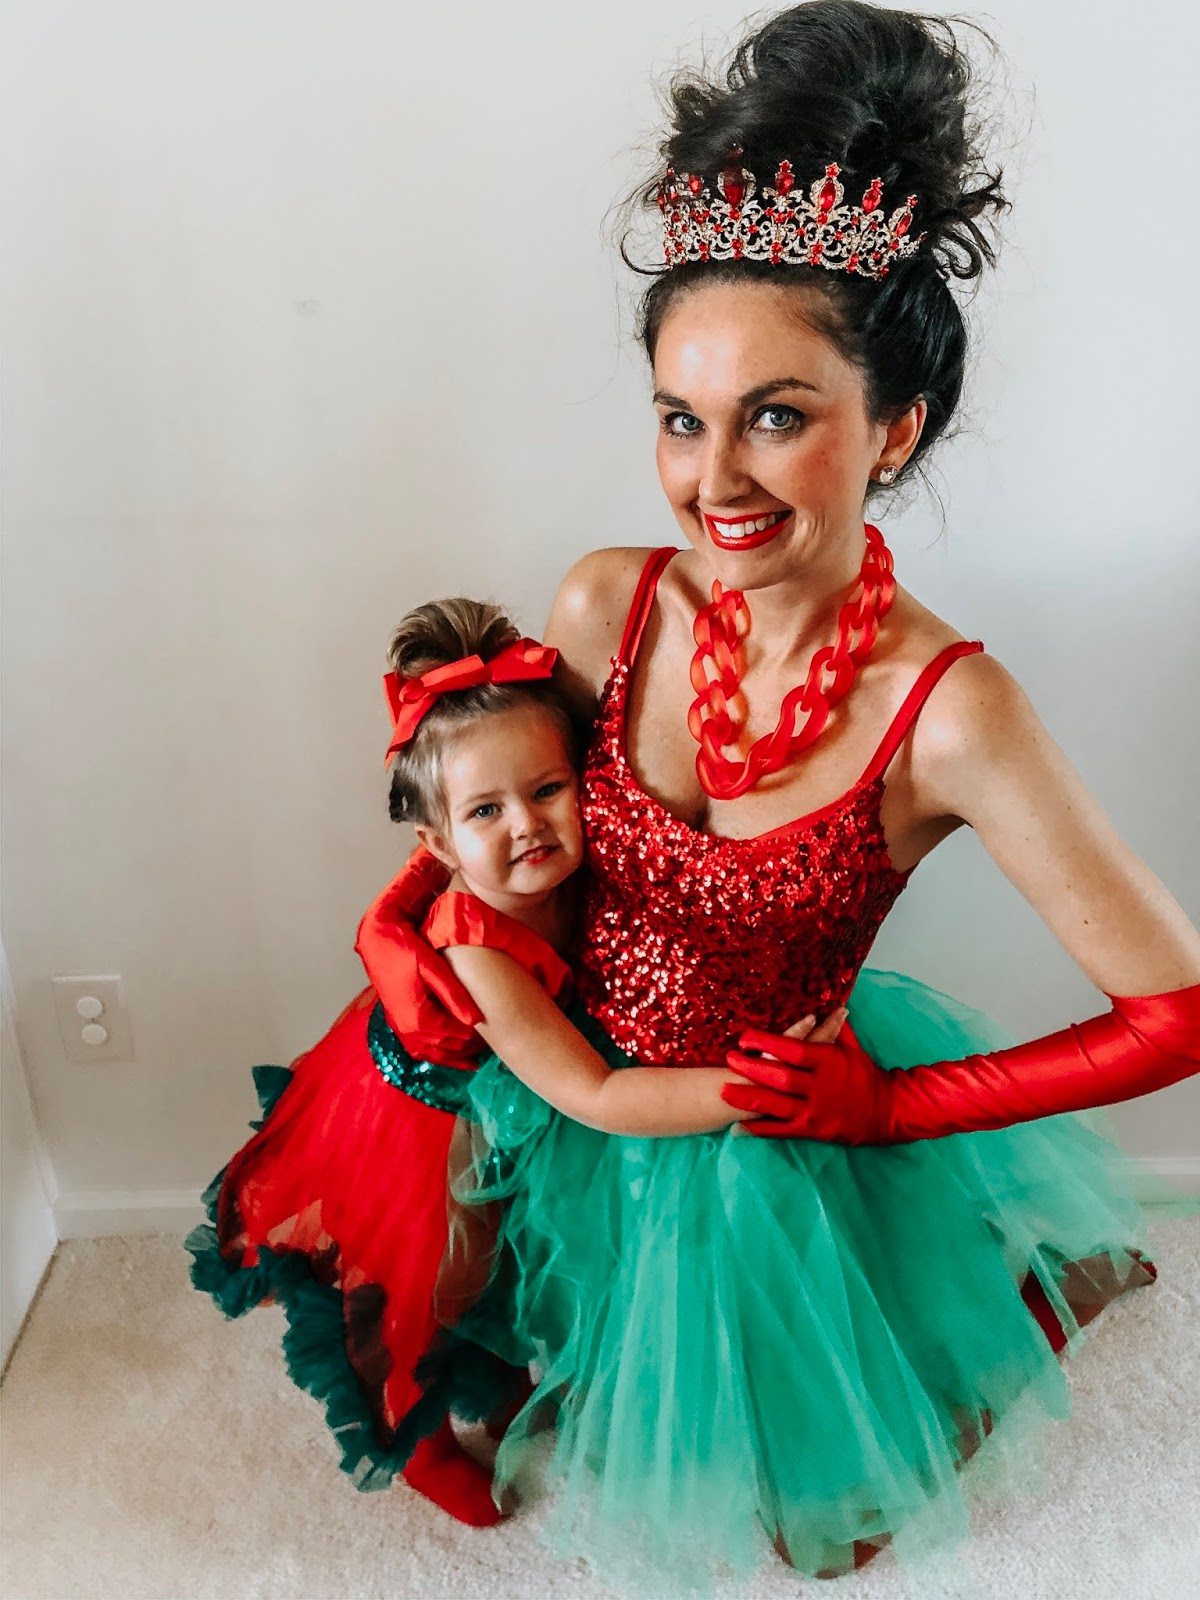 Cindy Lou Who & Martha May Who - Halloween 2019